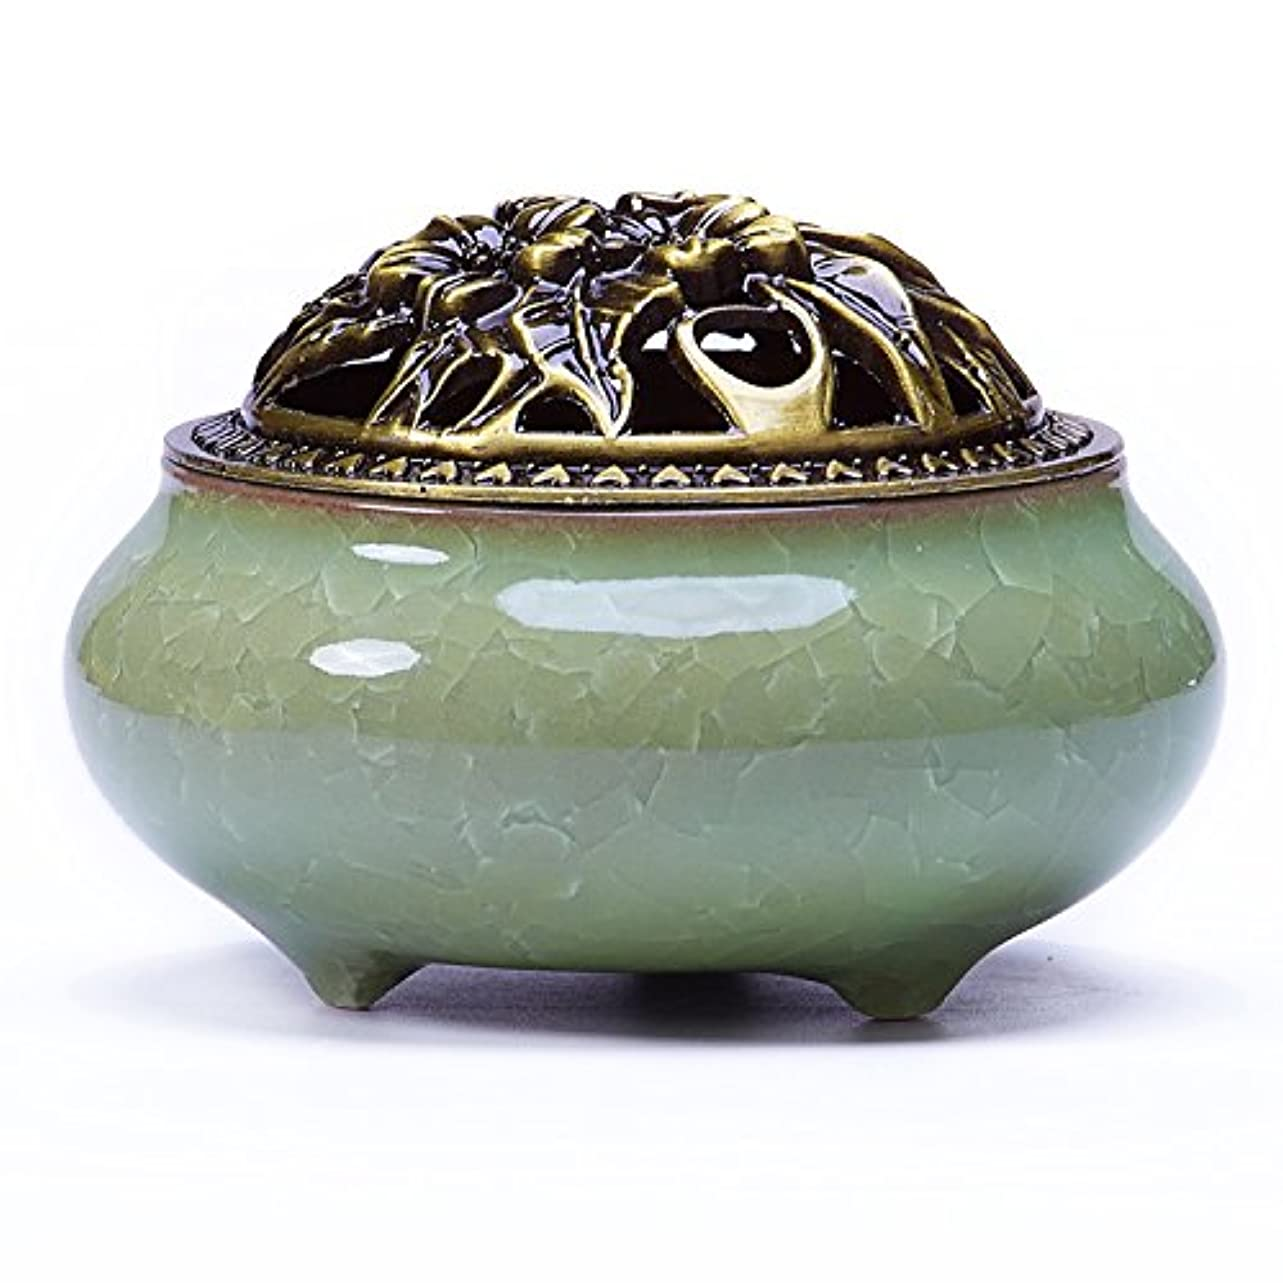 一致砂漠気絶させるUoonハンドメイドCone Incense Burner with真鍮Calabashホルダーfor Stick Incense and Coin Incense UOON-BL001